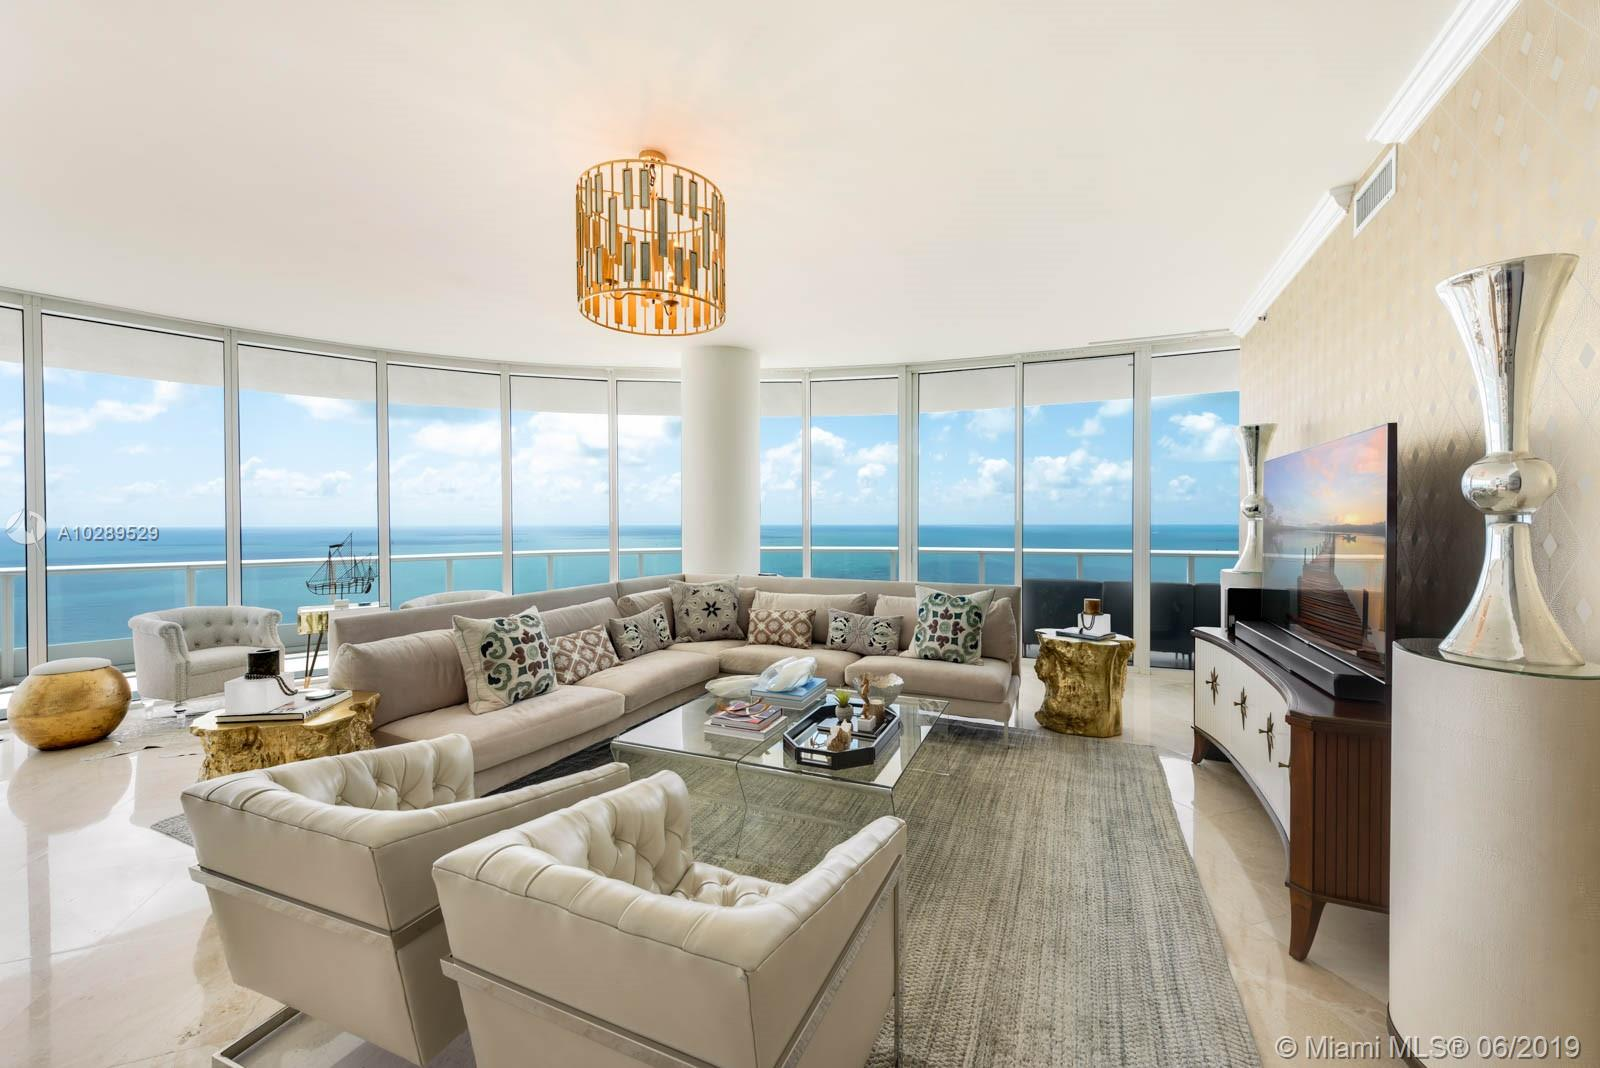 100 S Pointe Dr, Unit #2505 Luxury Real Estate